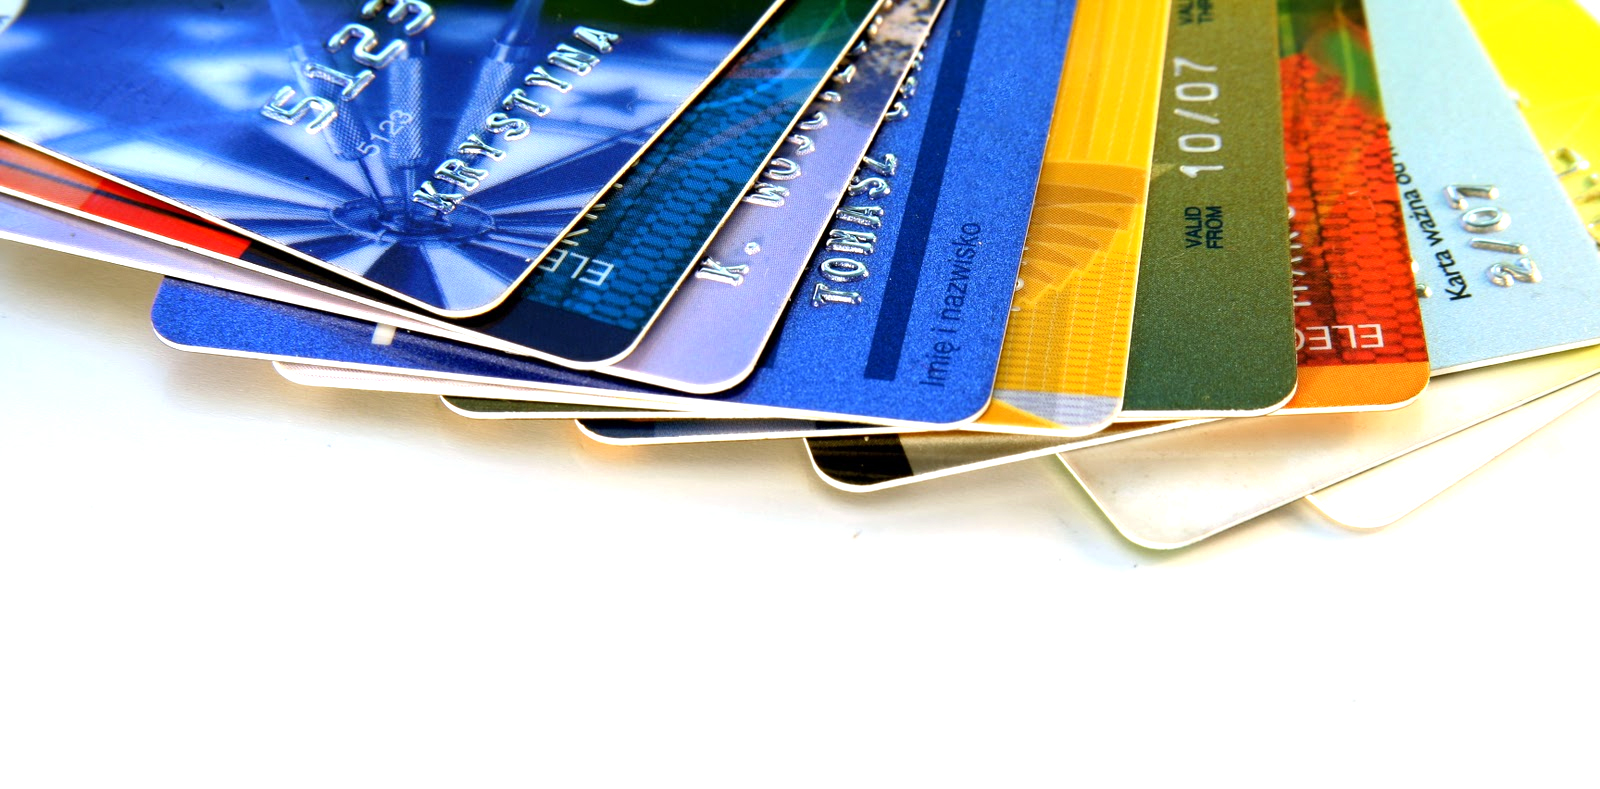 Pros and Cons of Living without a Credit Card